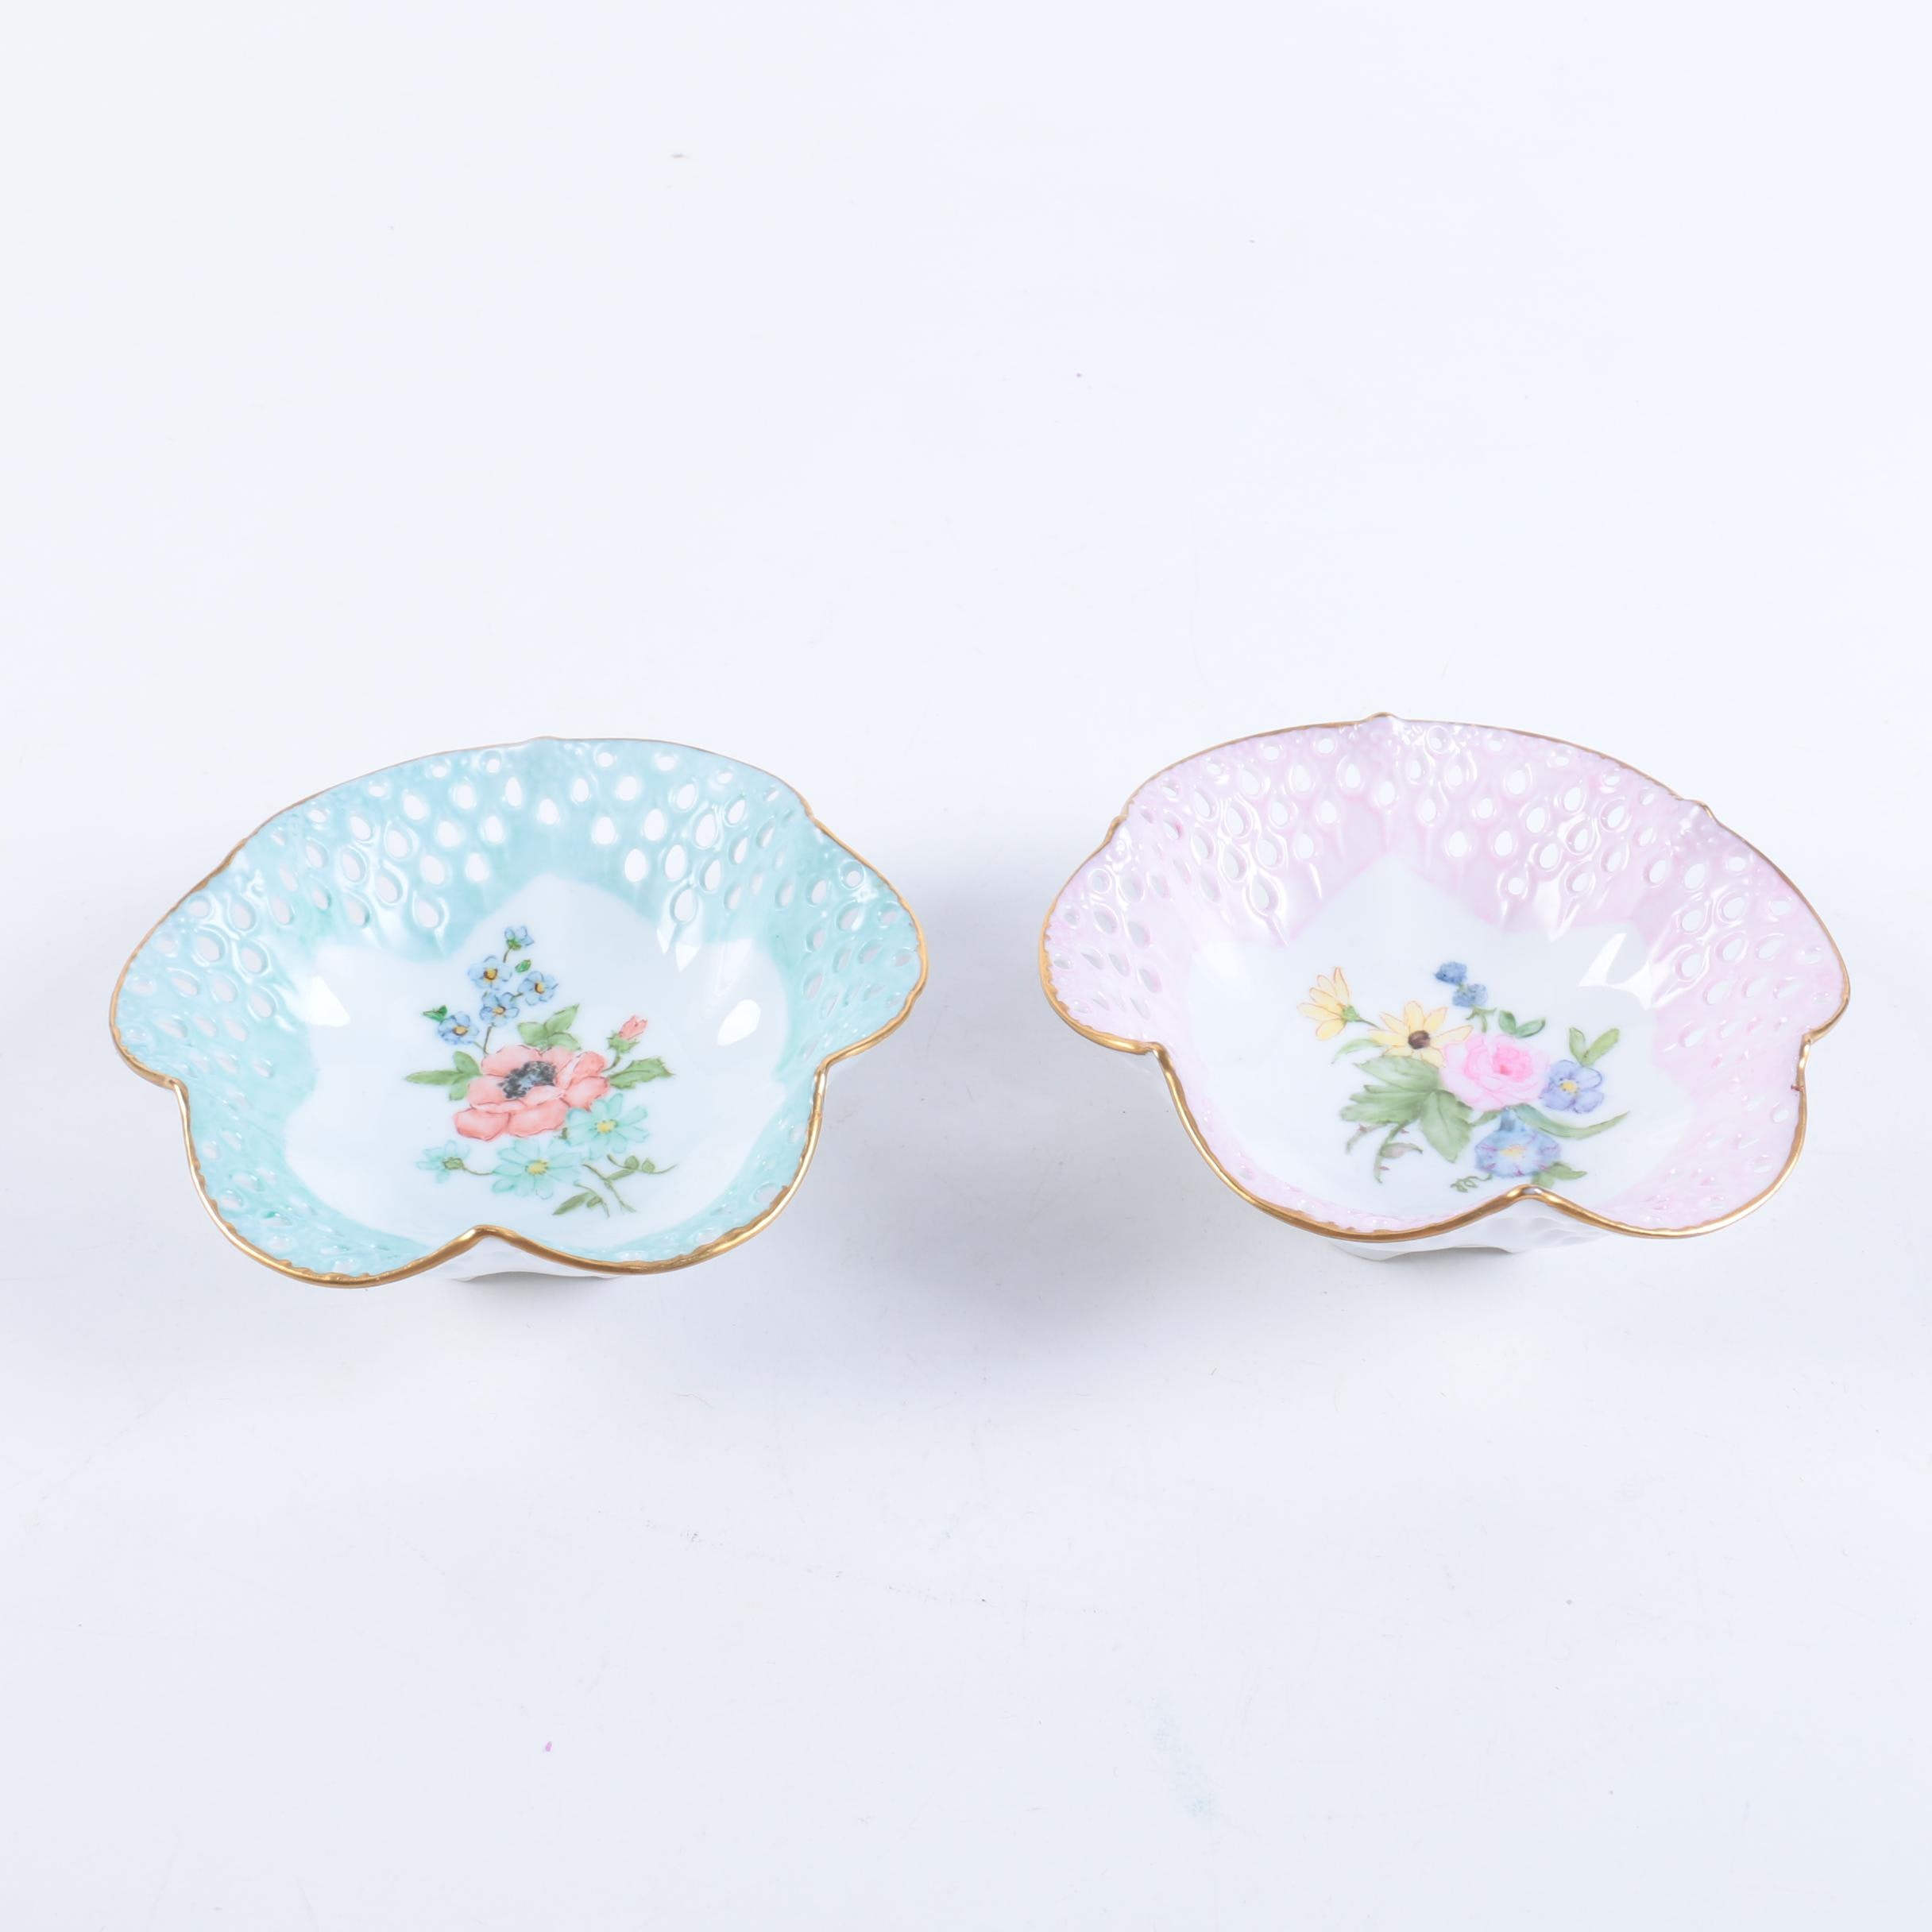 Hobbyist Hand-Painted Porcelain Bowls